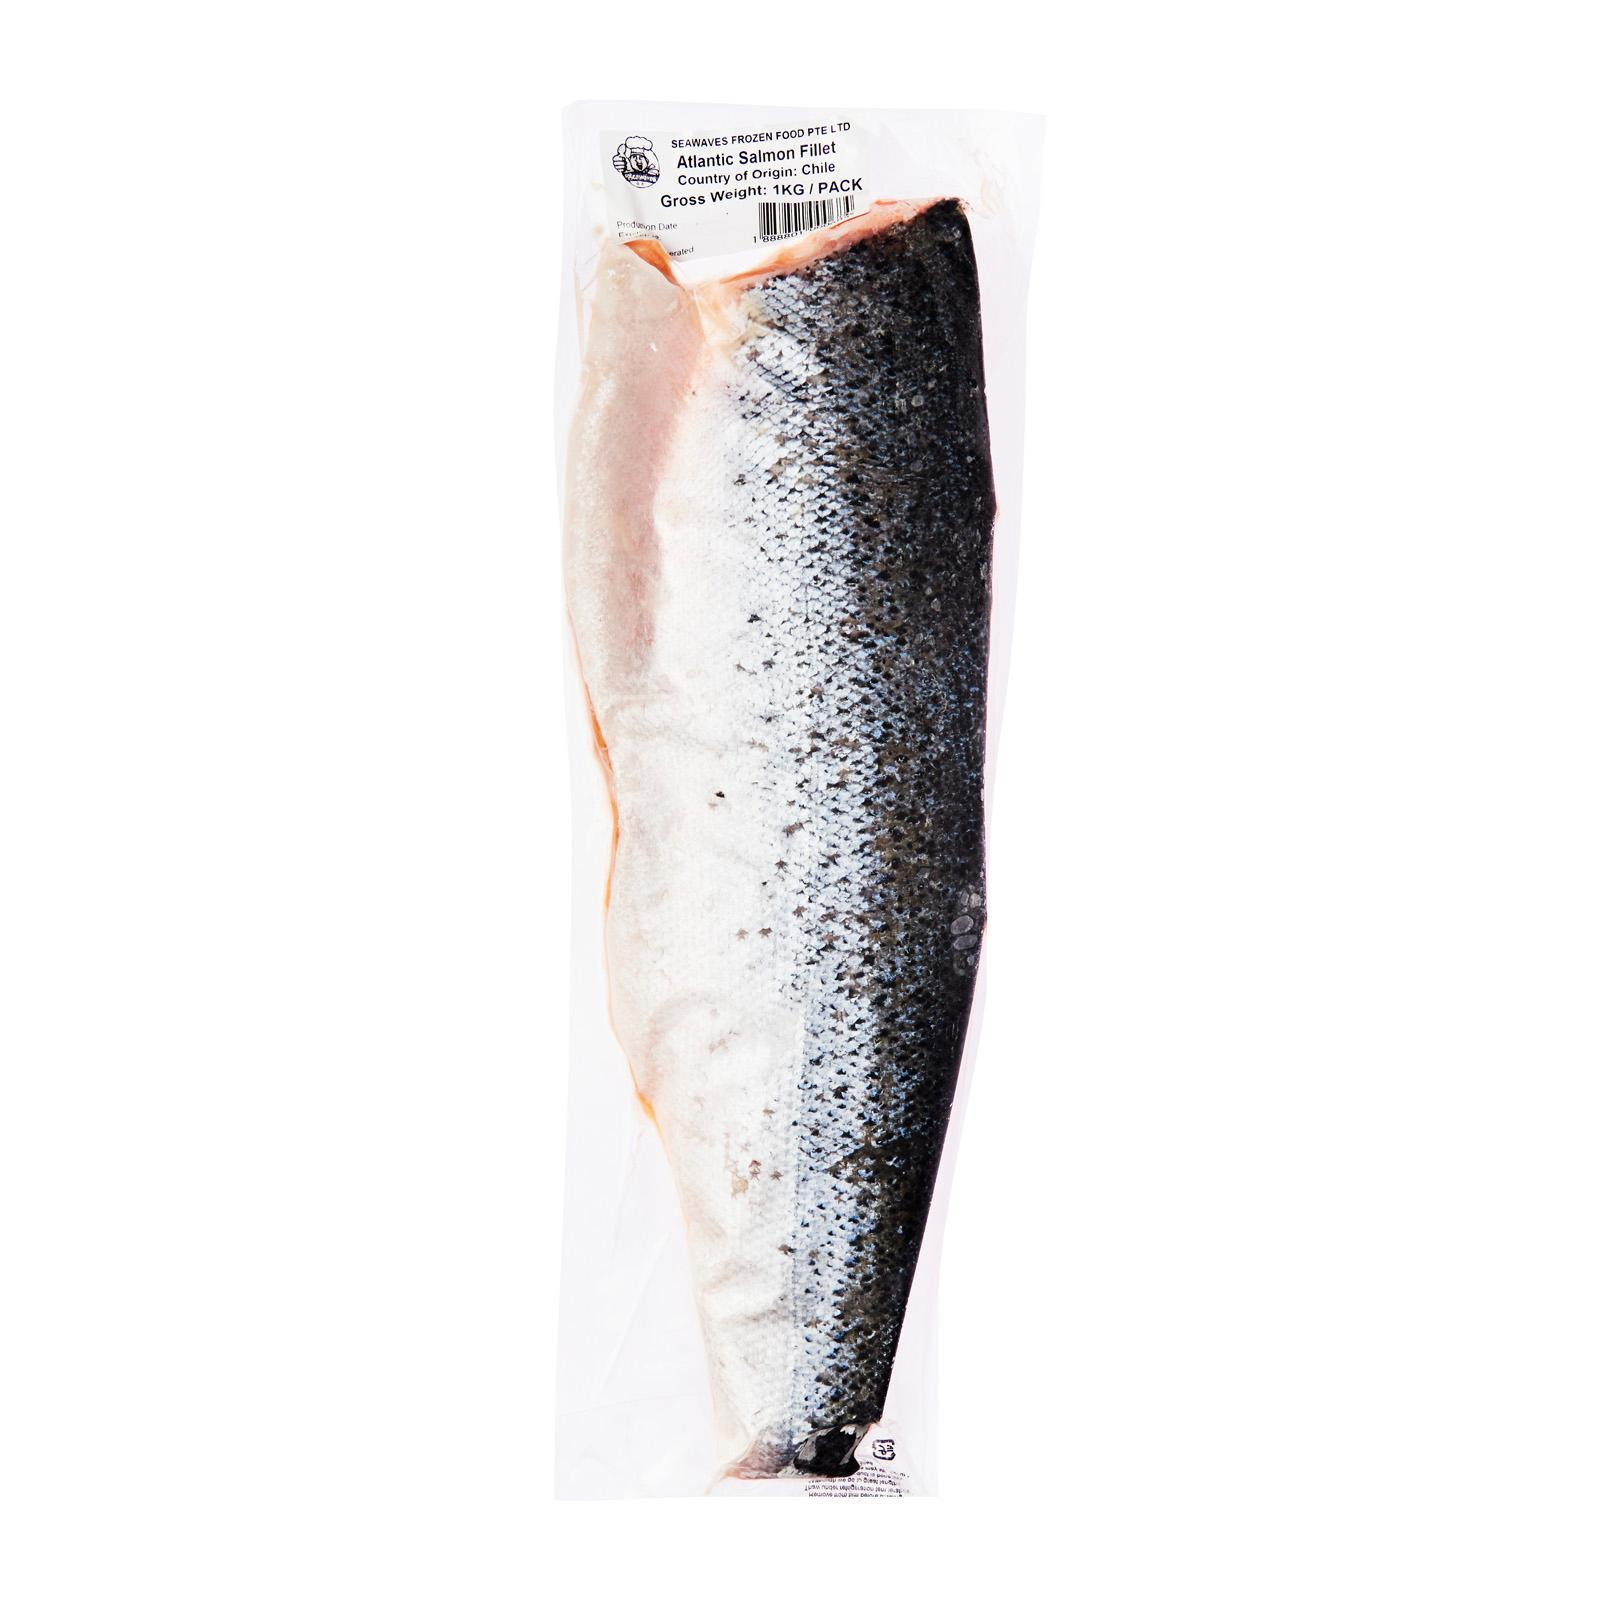 Seawaves Atlantic Salmon Fillet - Frozen